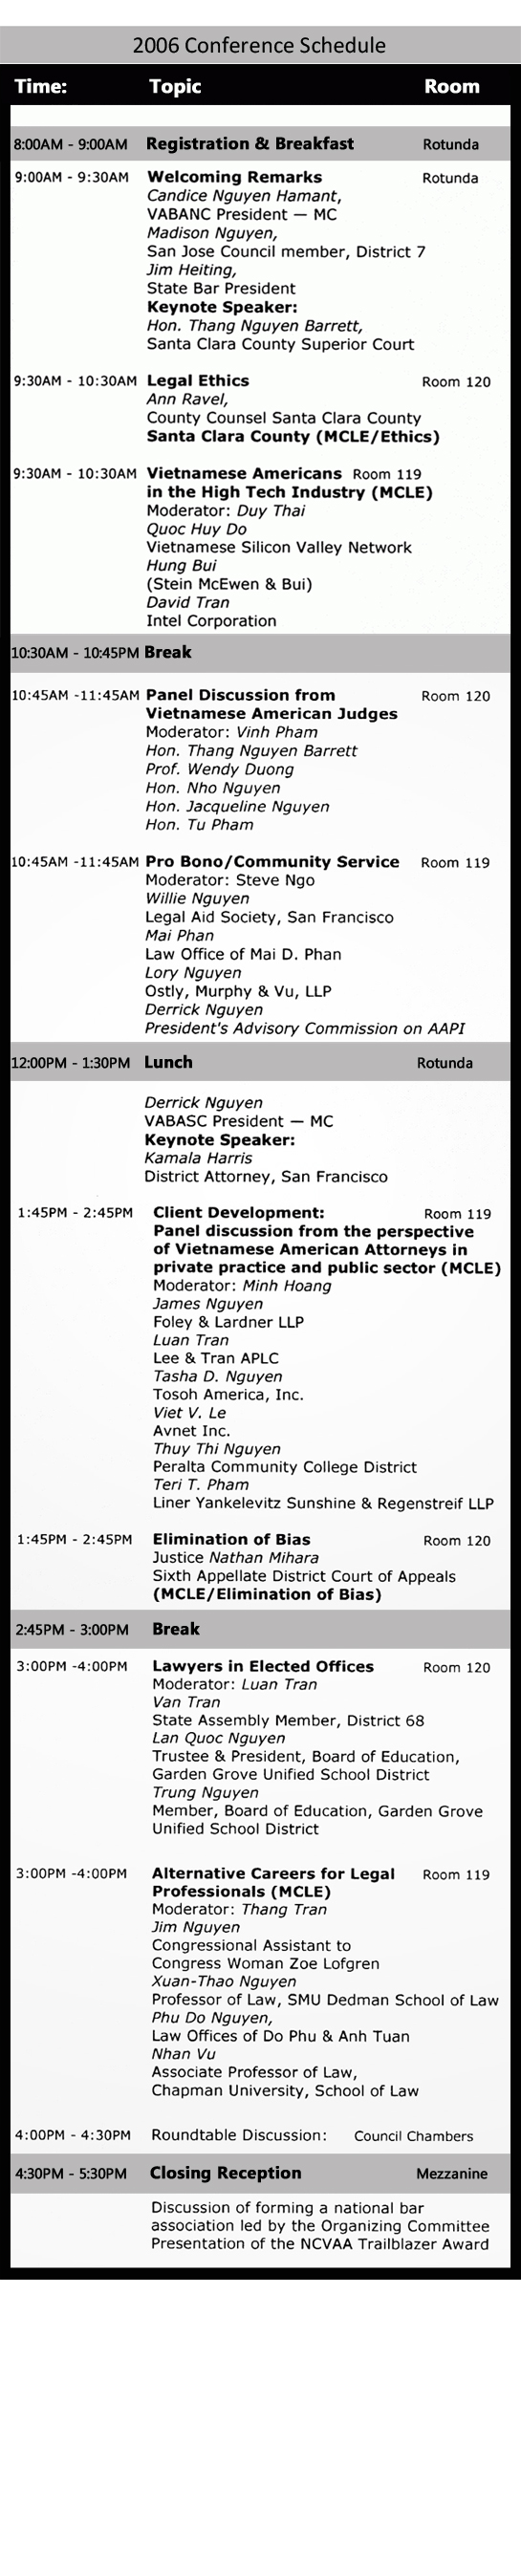 2006_Conference_Schedule